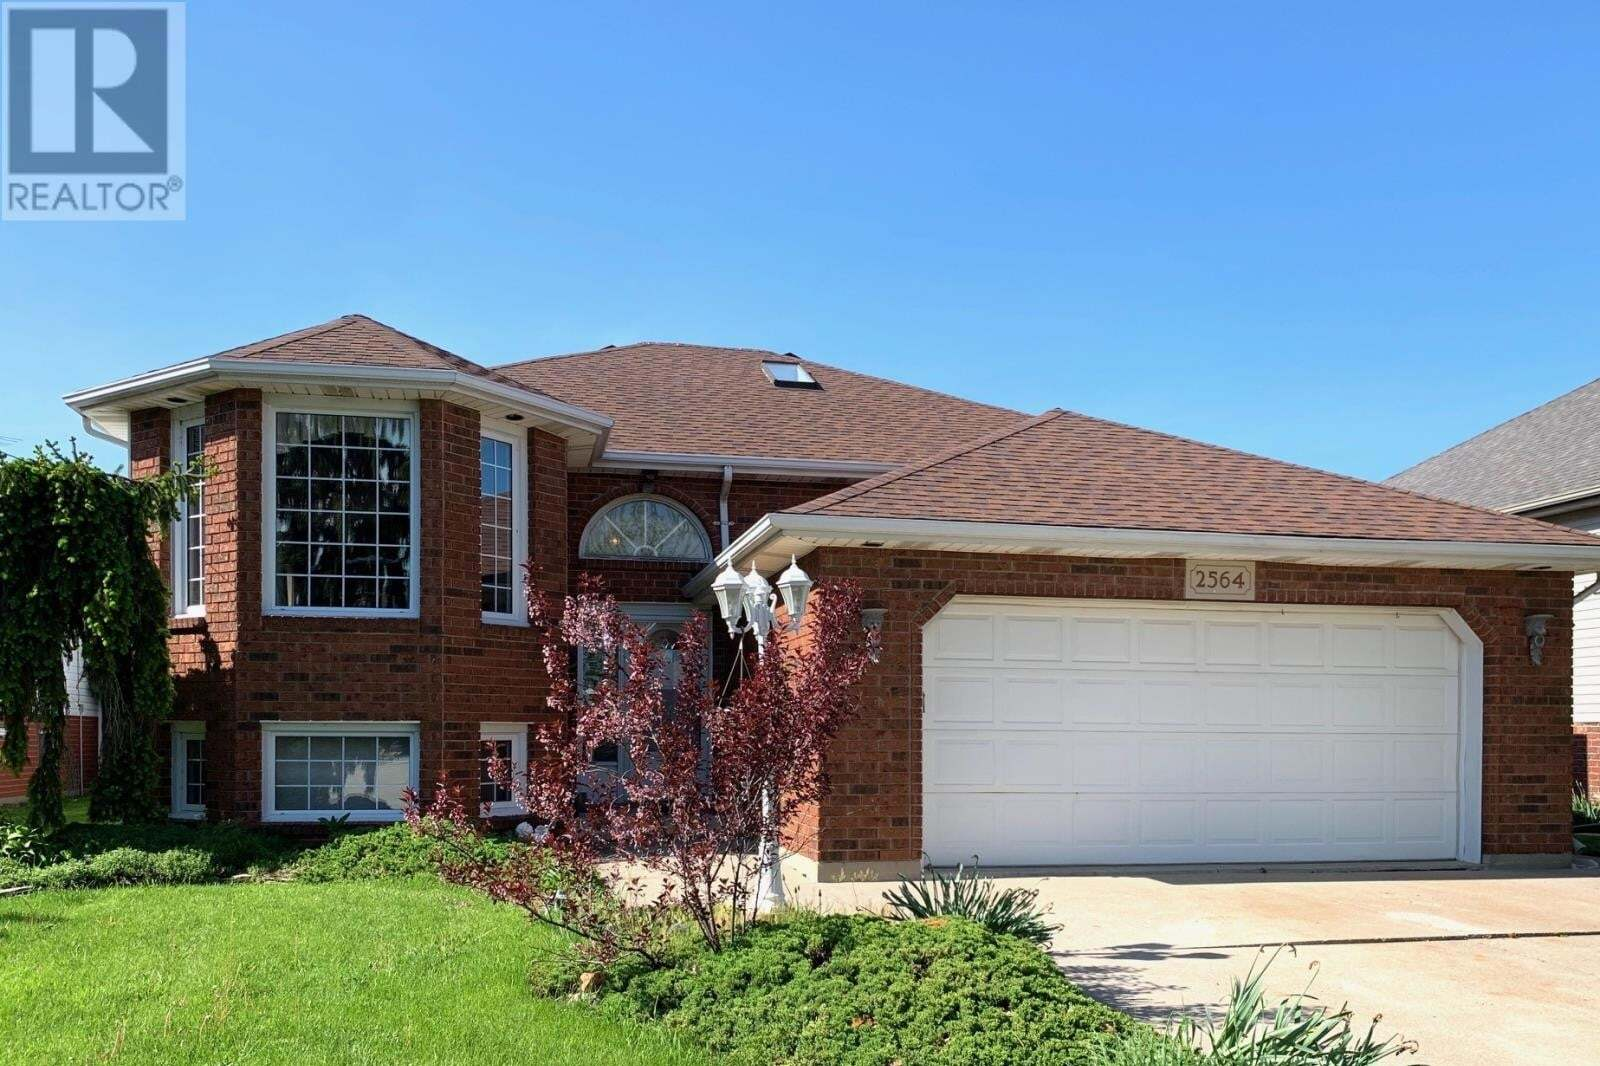 House for sale at 2564 Wildberry Cres Tecumseh Ontario - MLS: 20005822